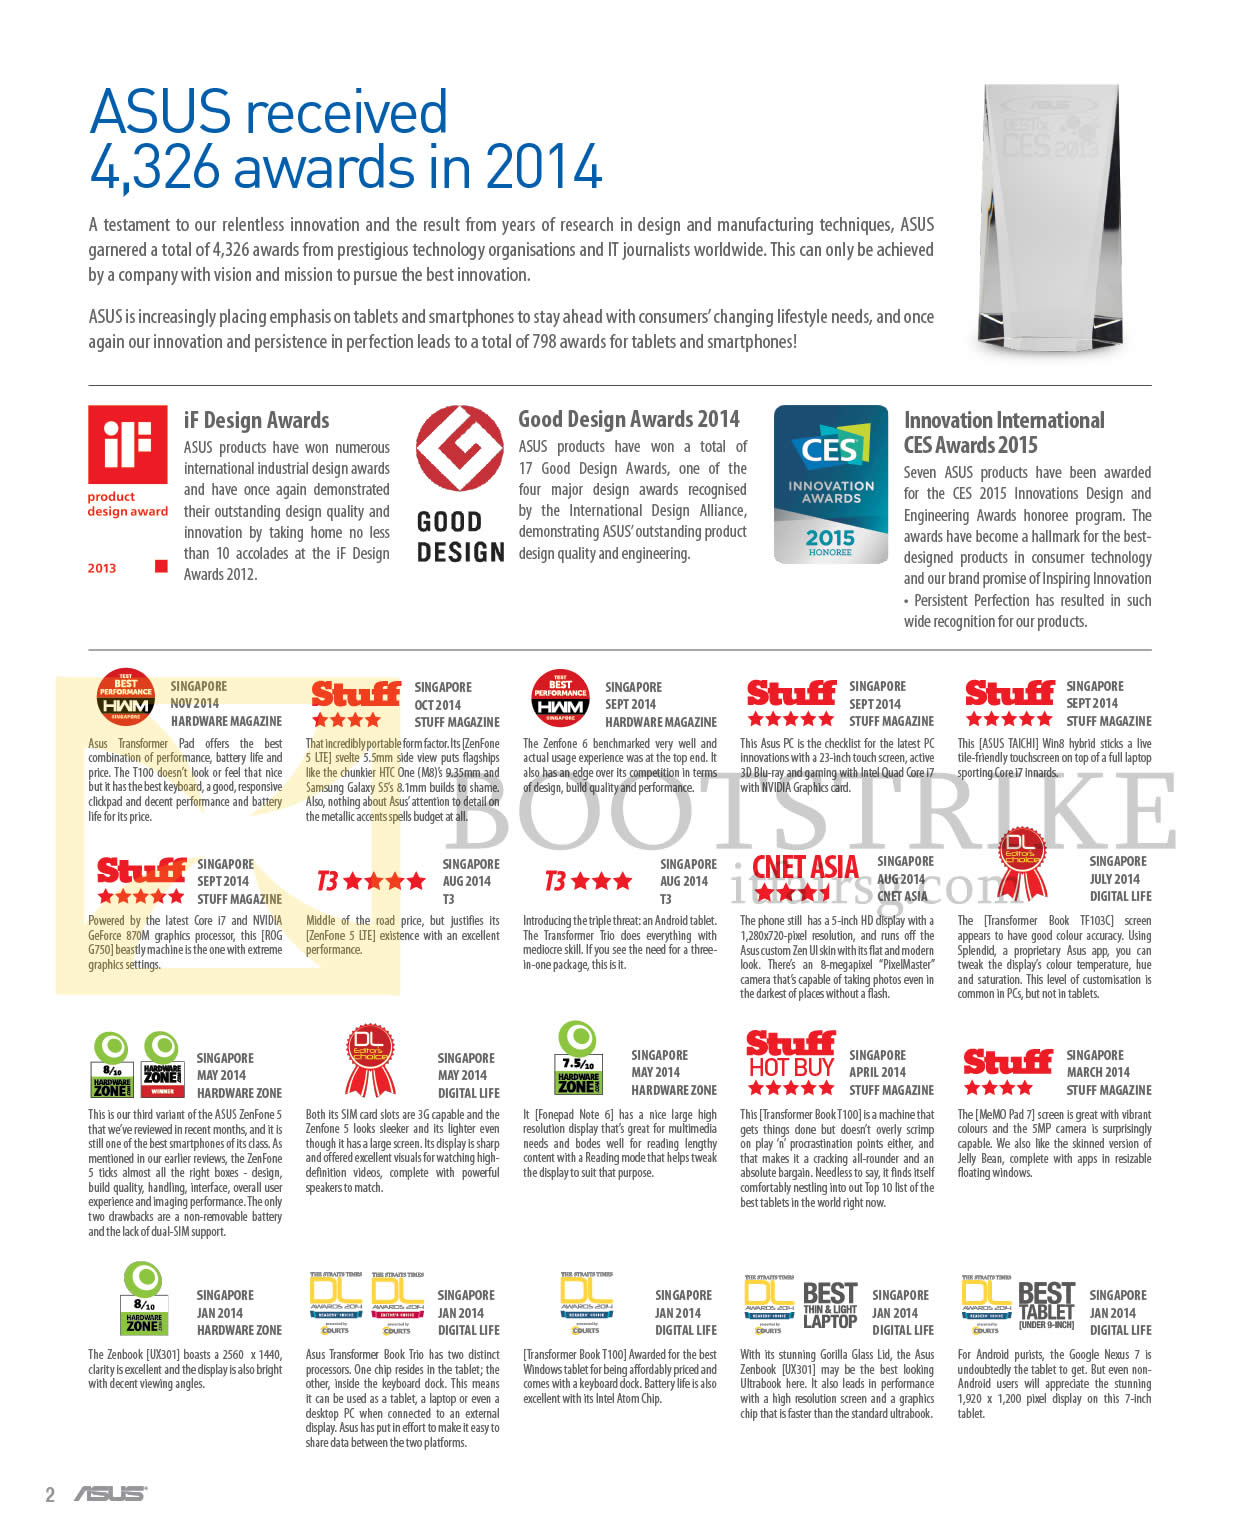 IT SHOW 2015 price list image brochure of ASUS 2014 Awards